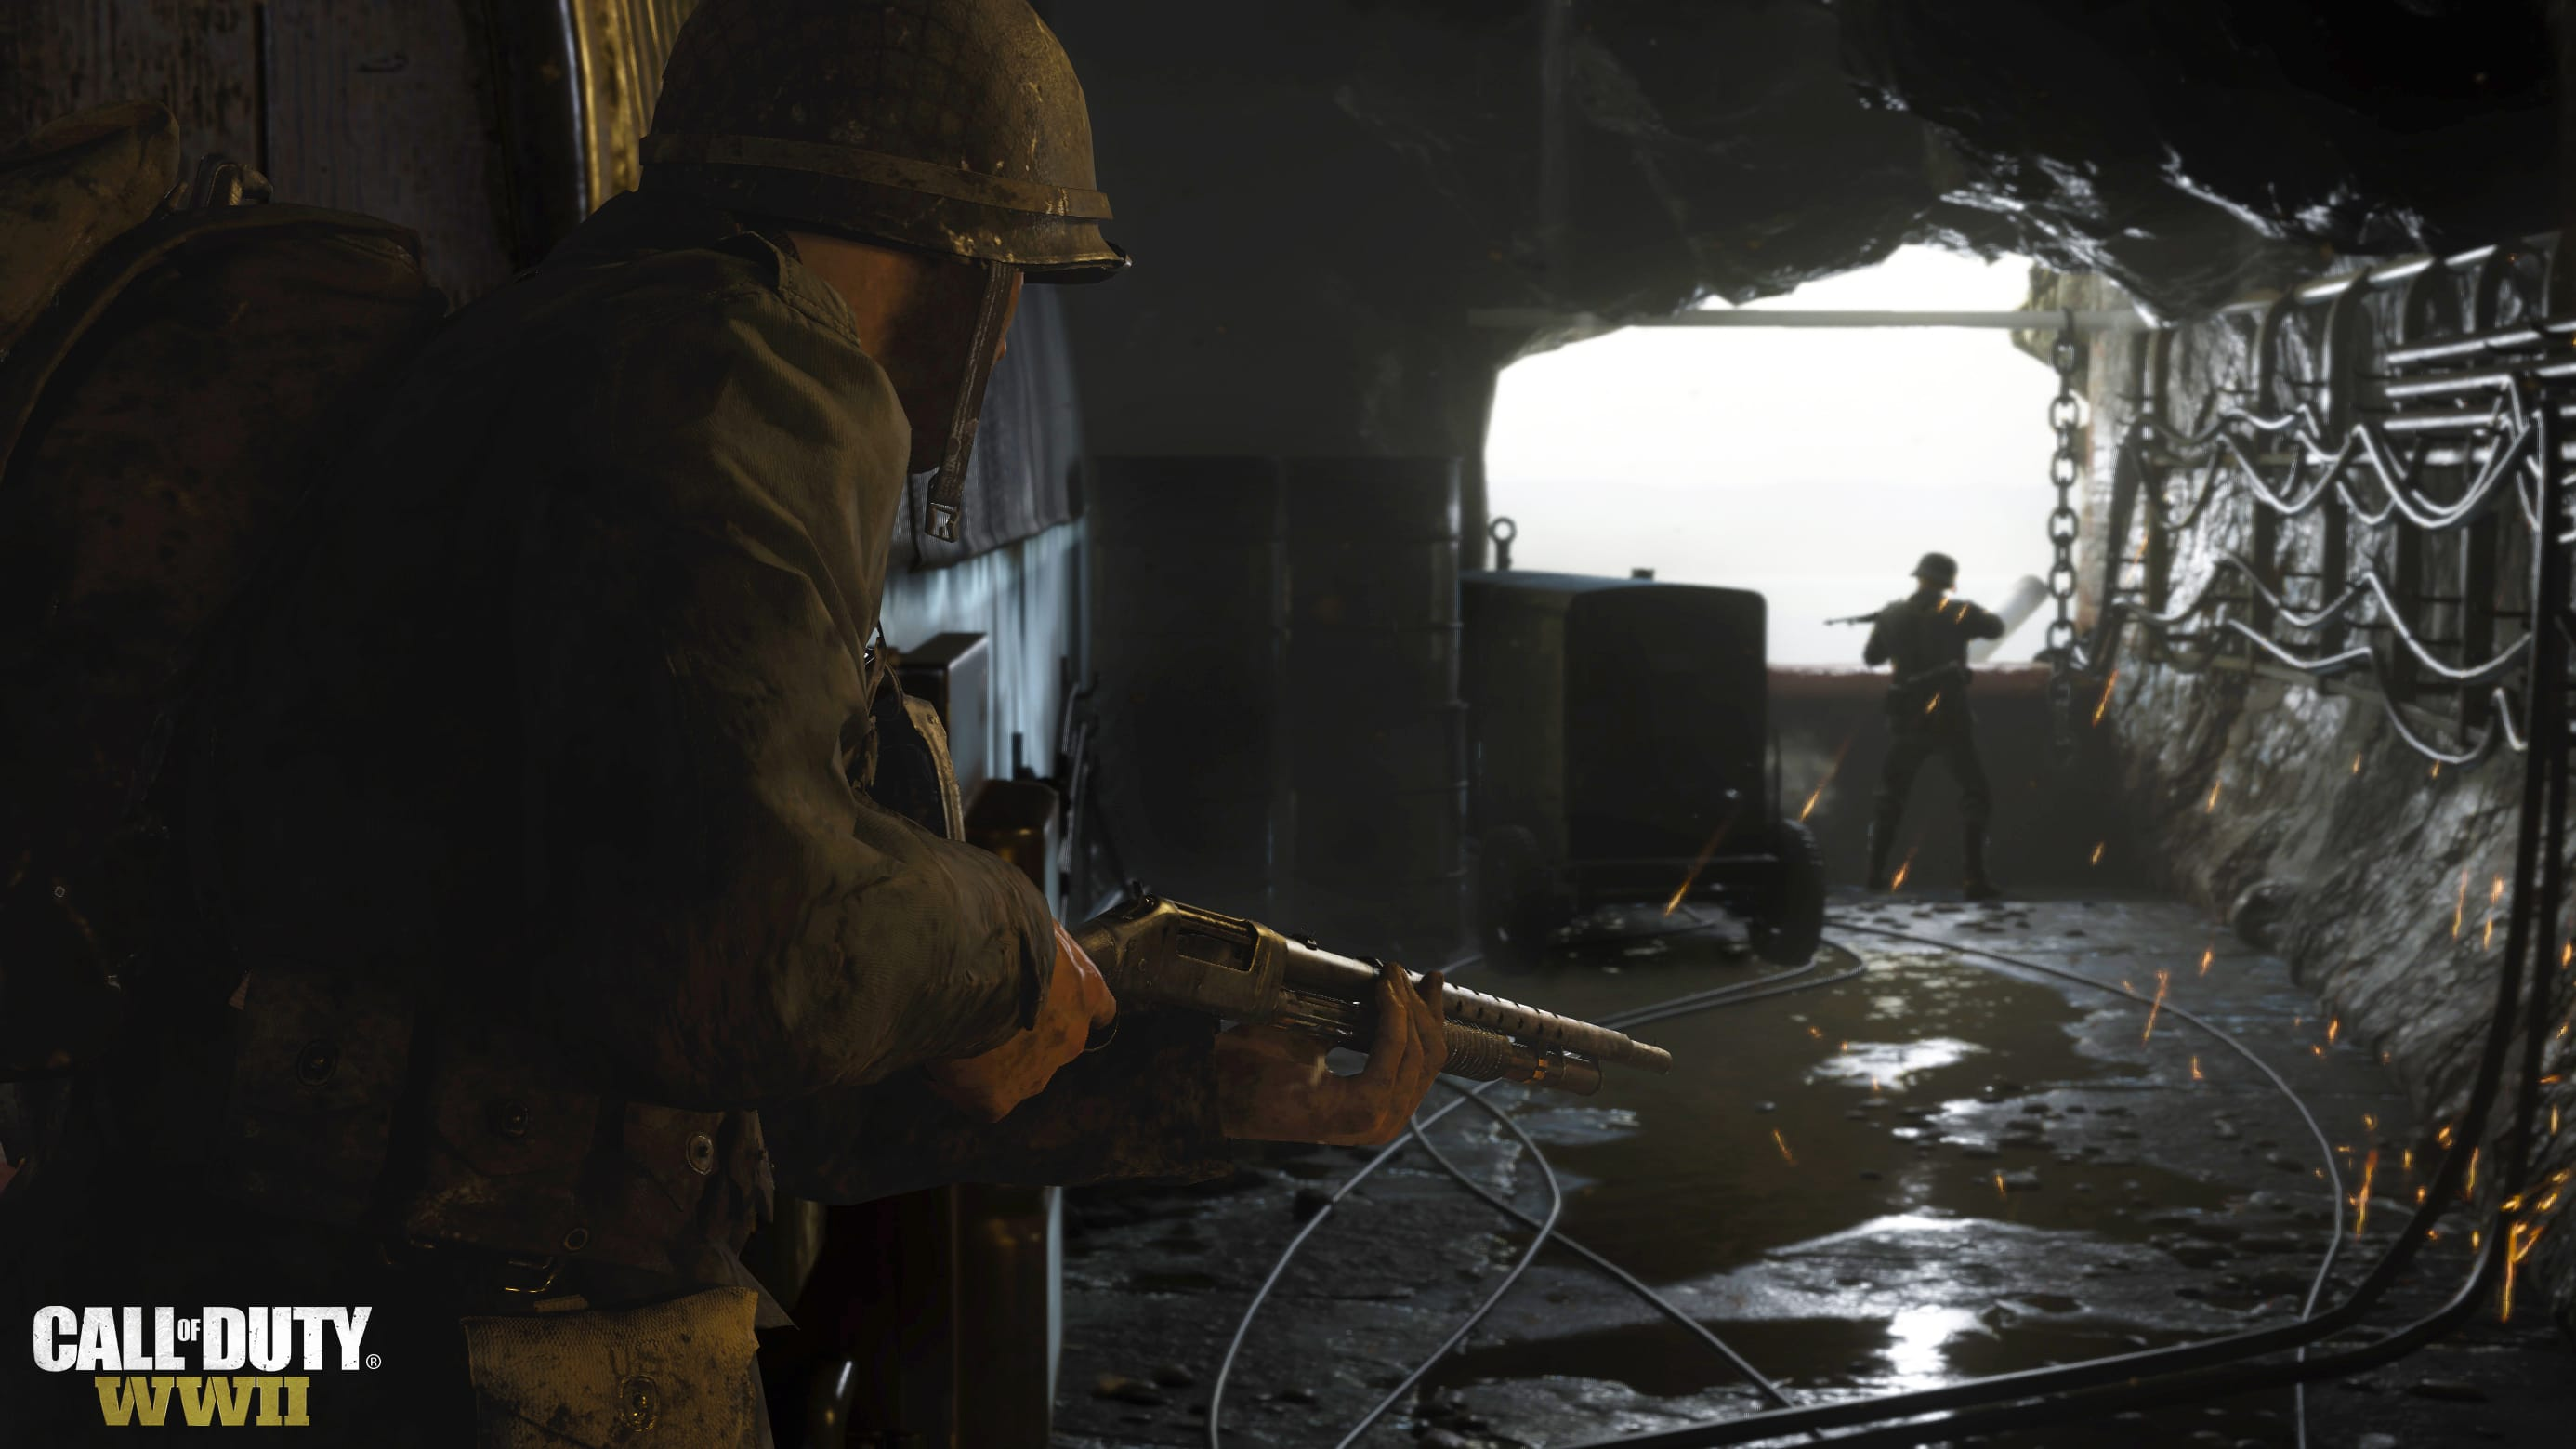 Call Of Duty Ww2 Screenshots And Wallpaper Gamerfuzion